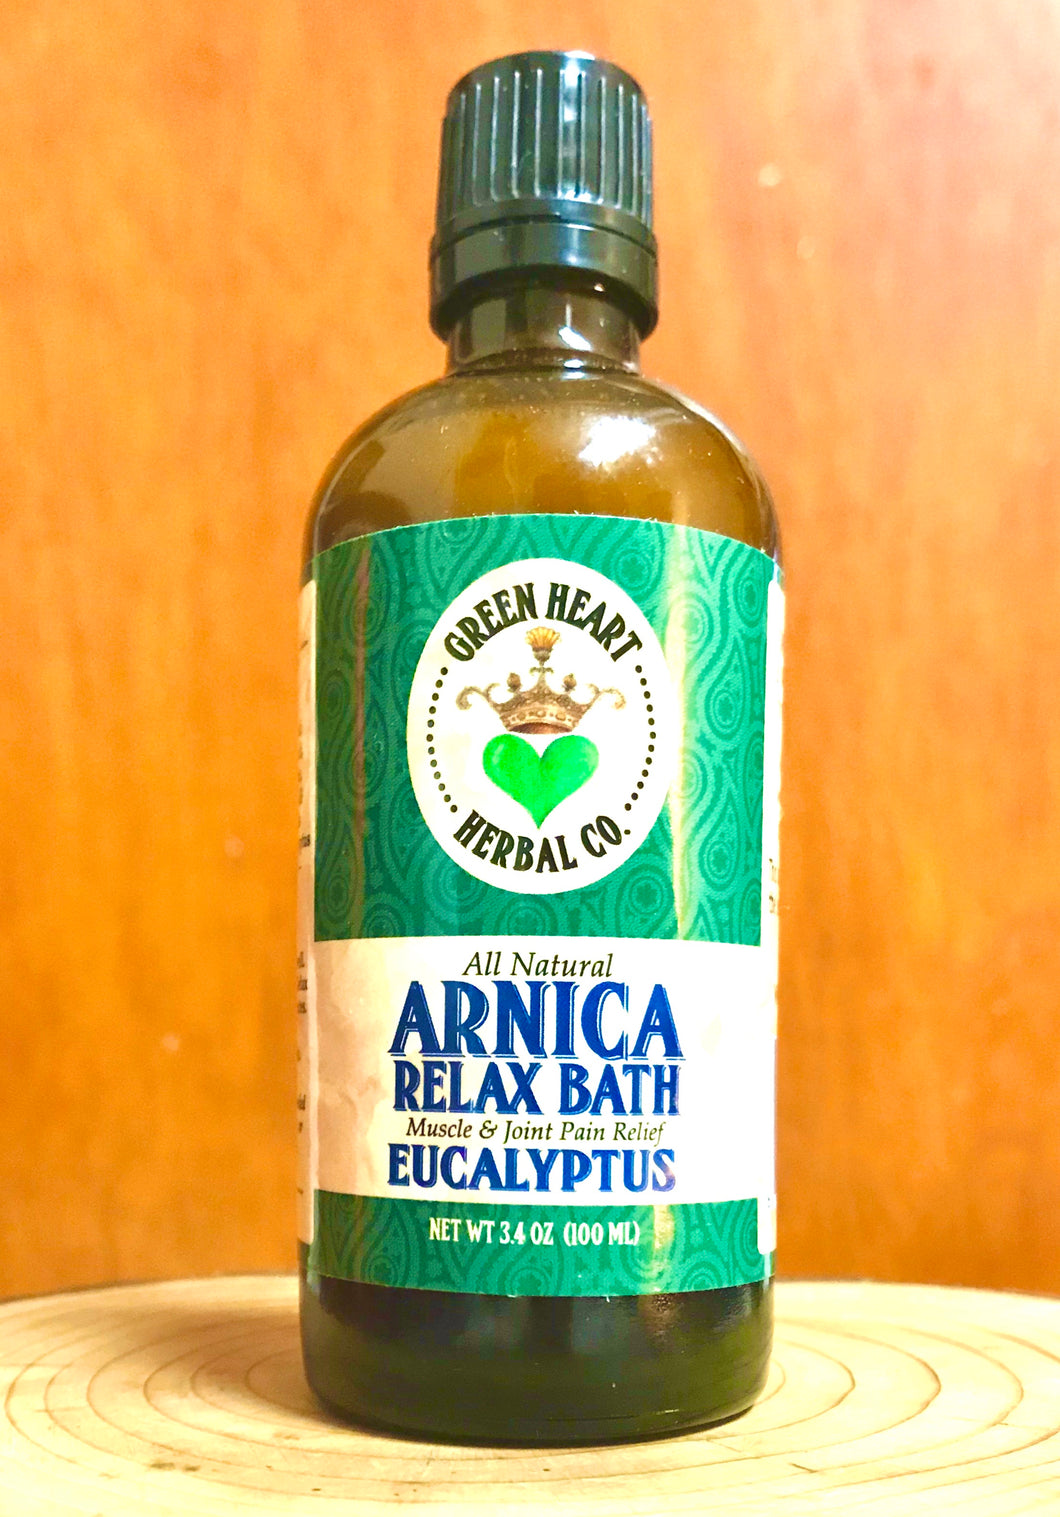 Arnica Relax Bath Eucalyptus- Full body Pain Reliever in the Bathtub